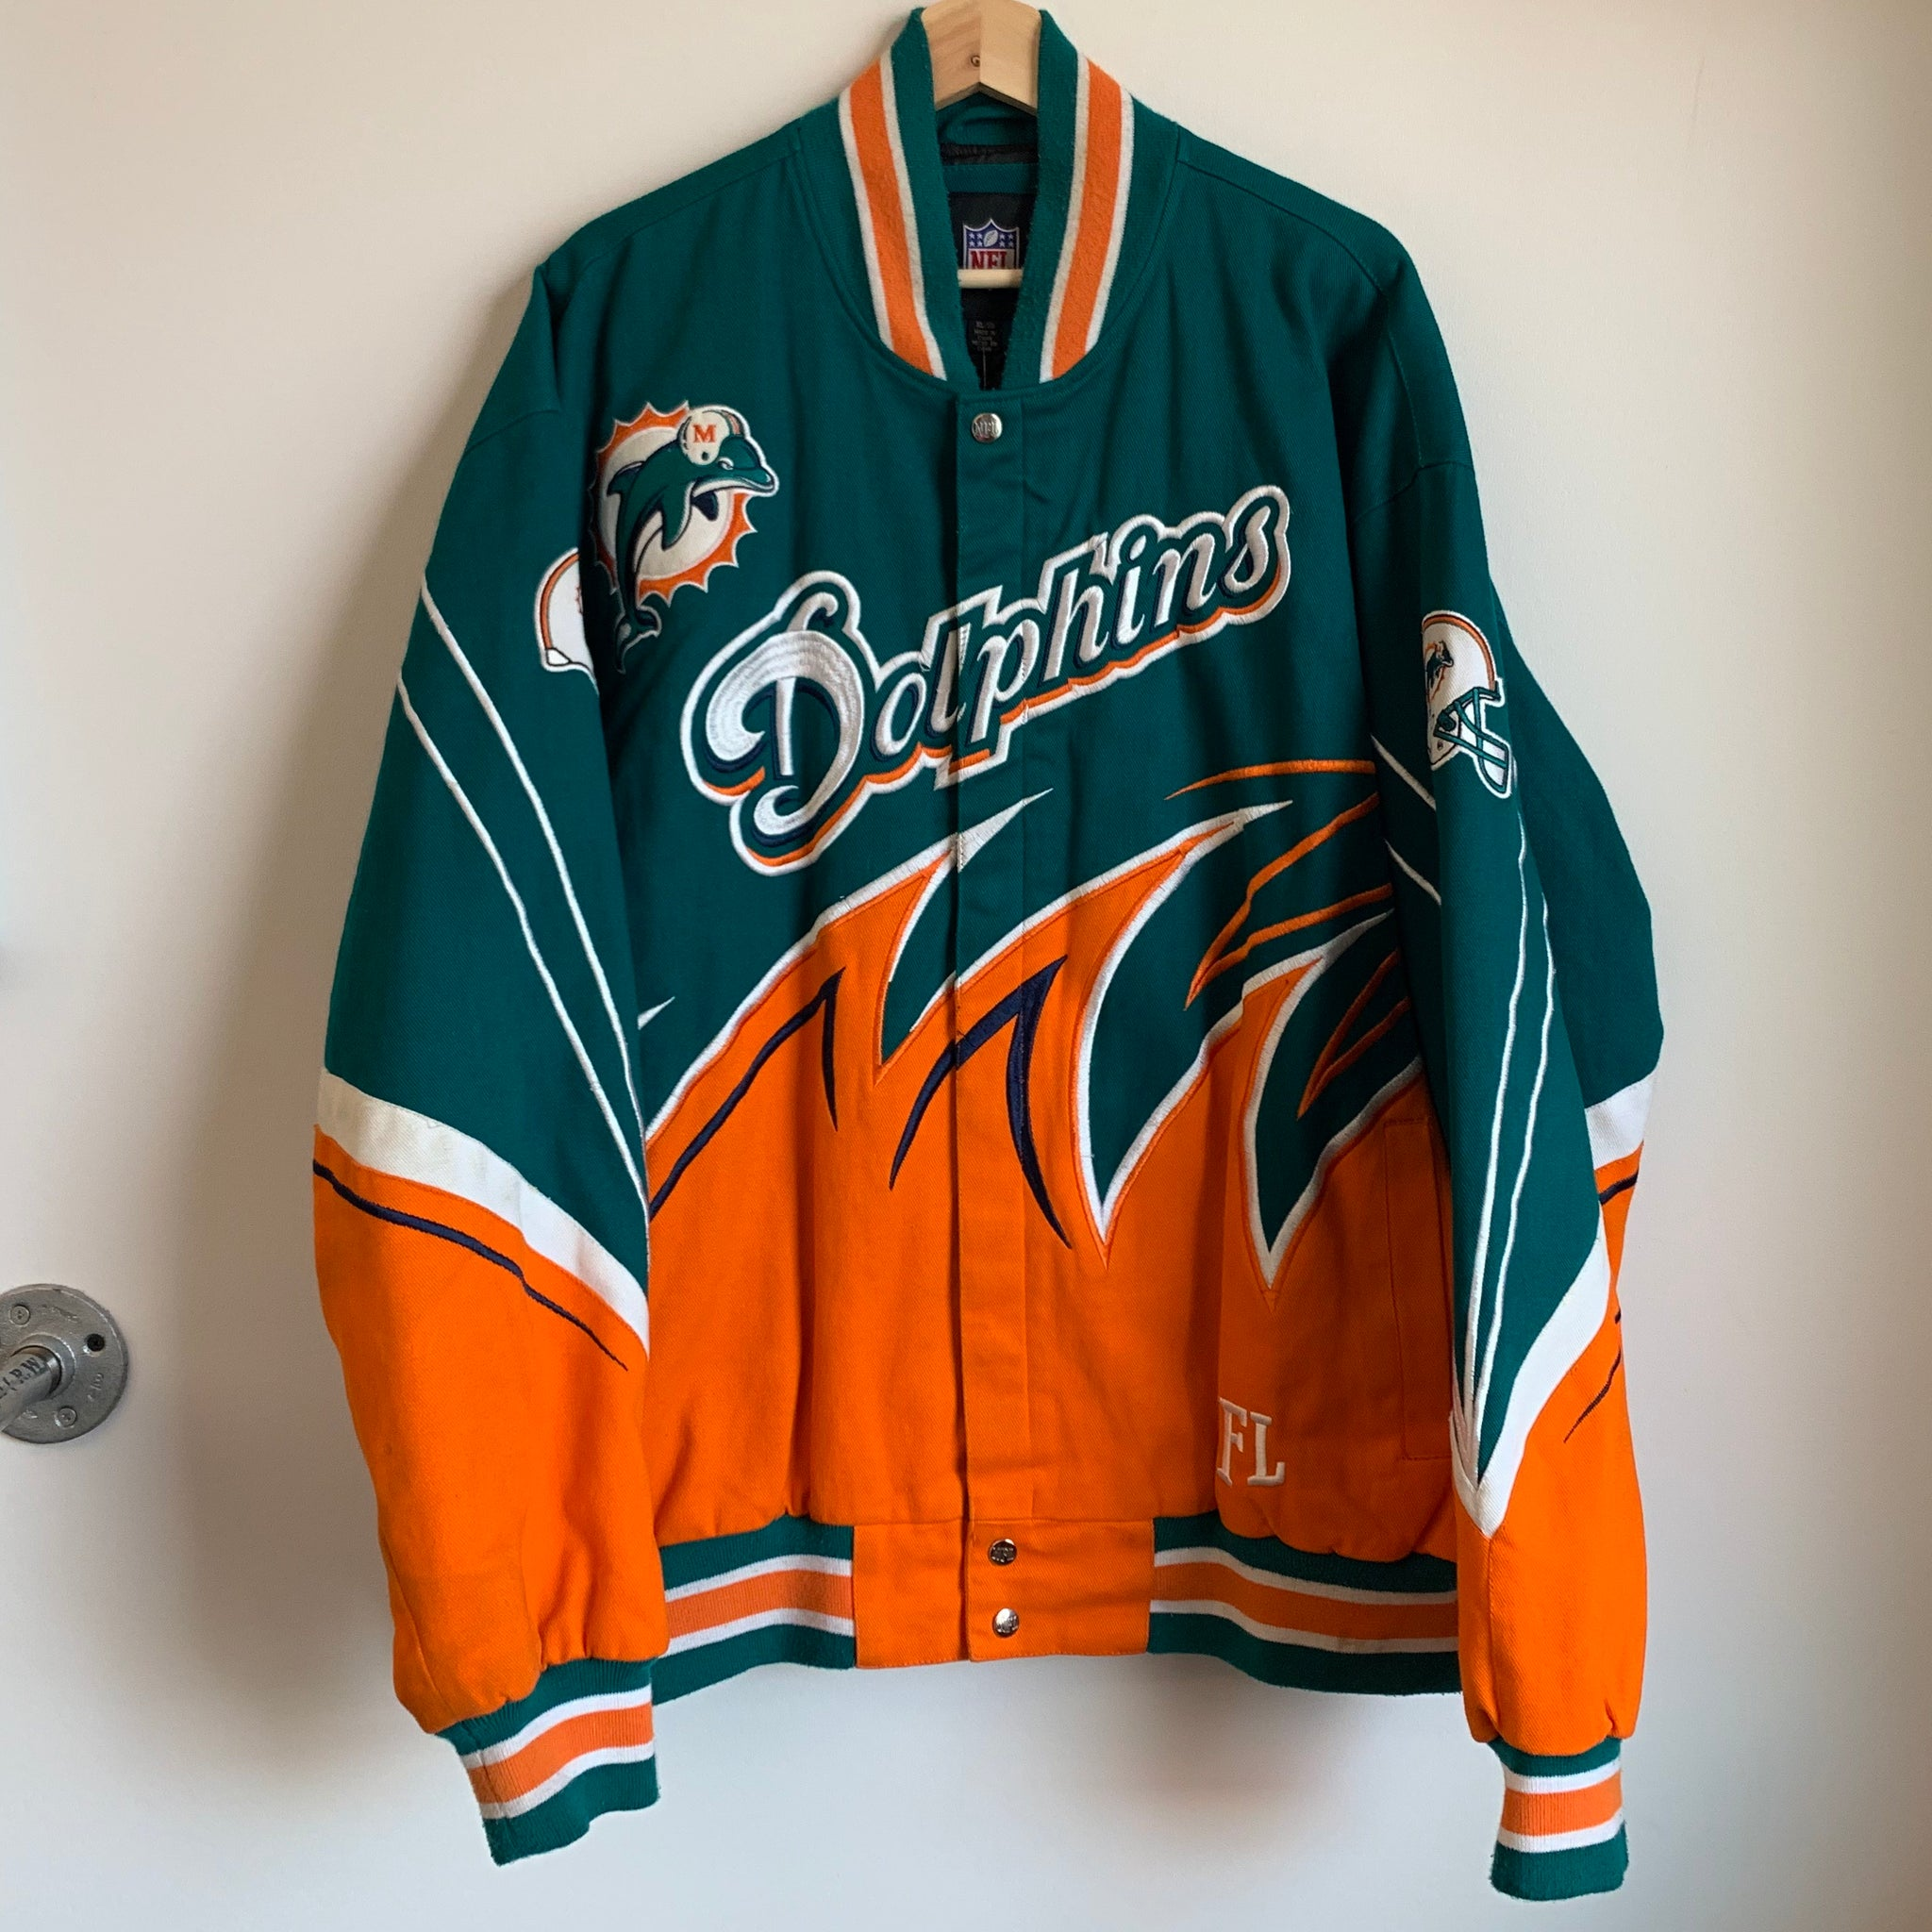 Miami Dolphins Teal / Orange Shark Twill Jacket